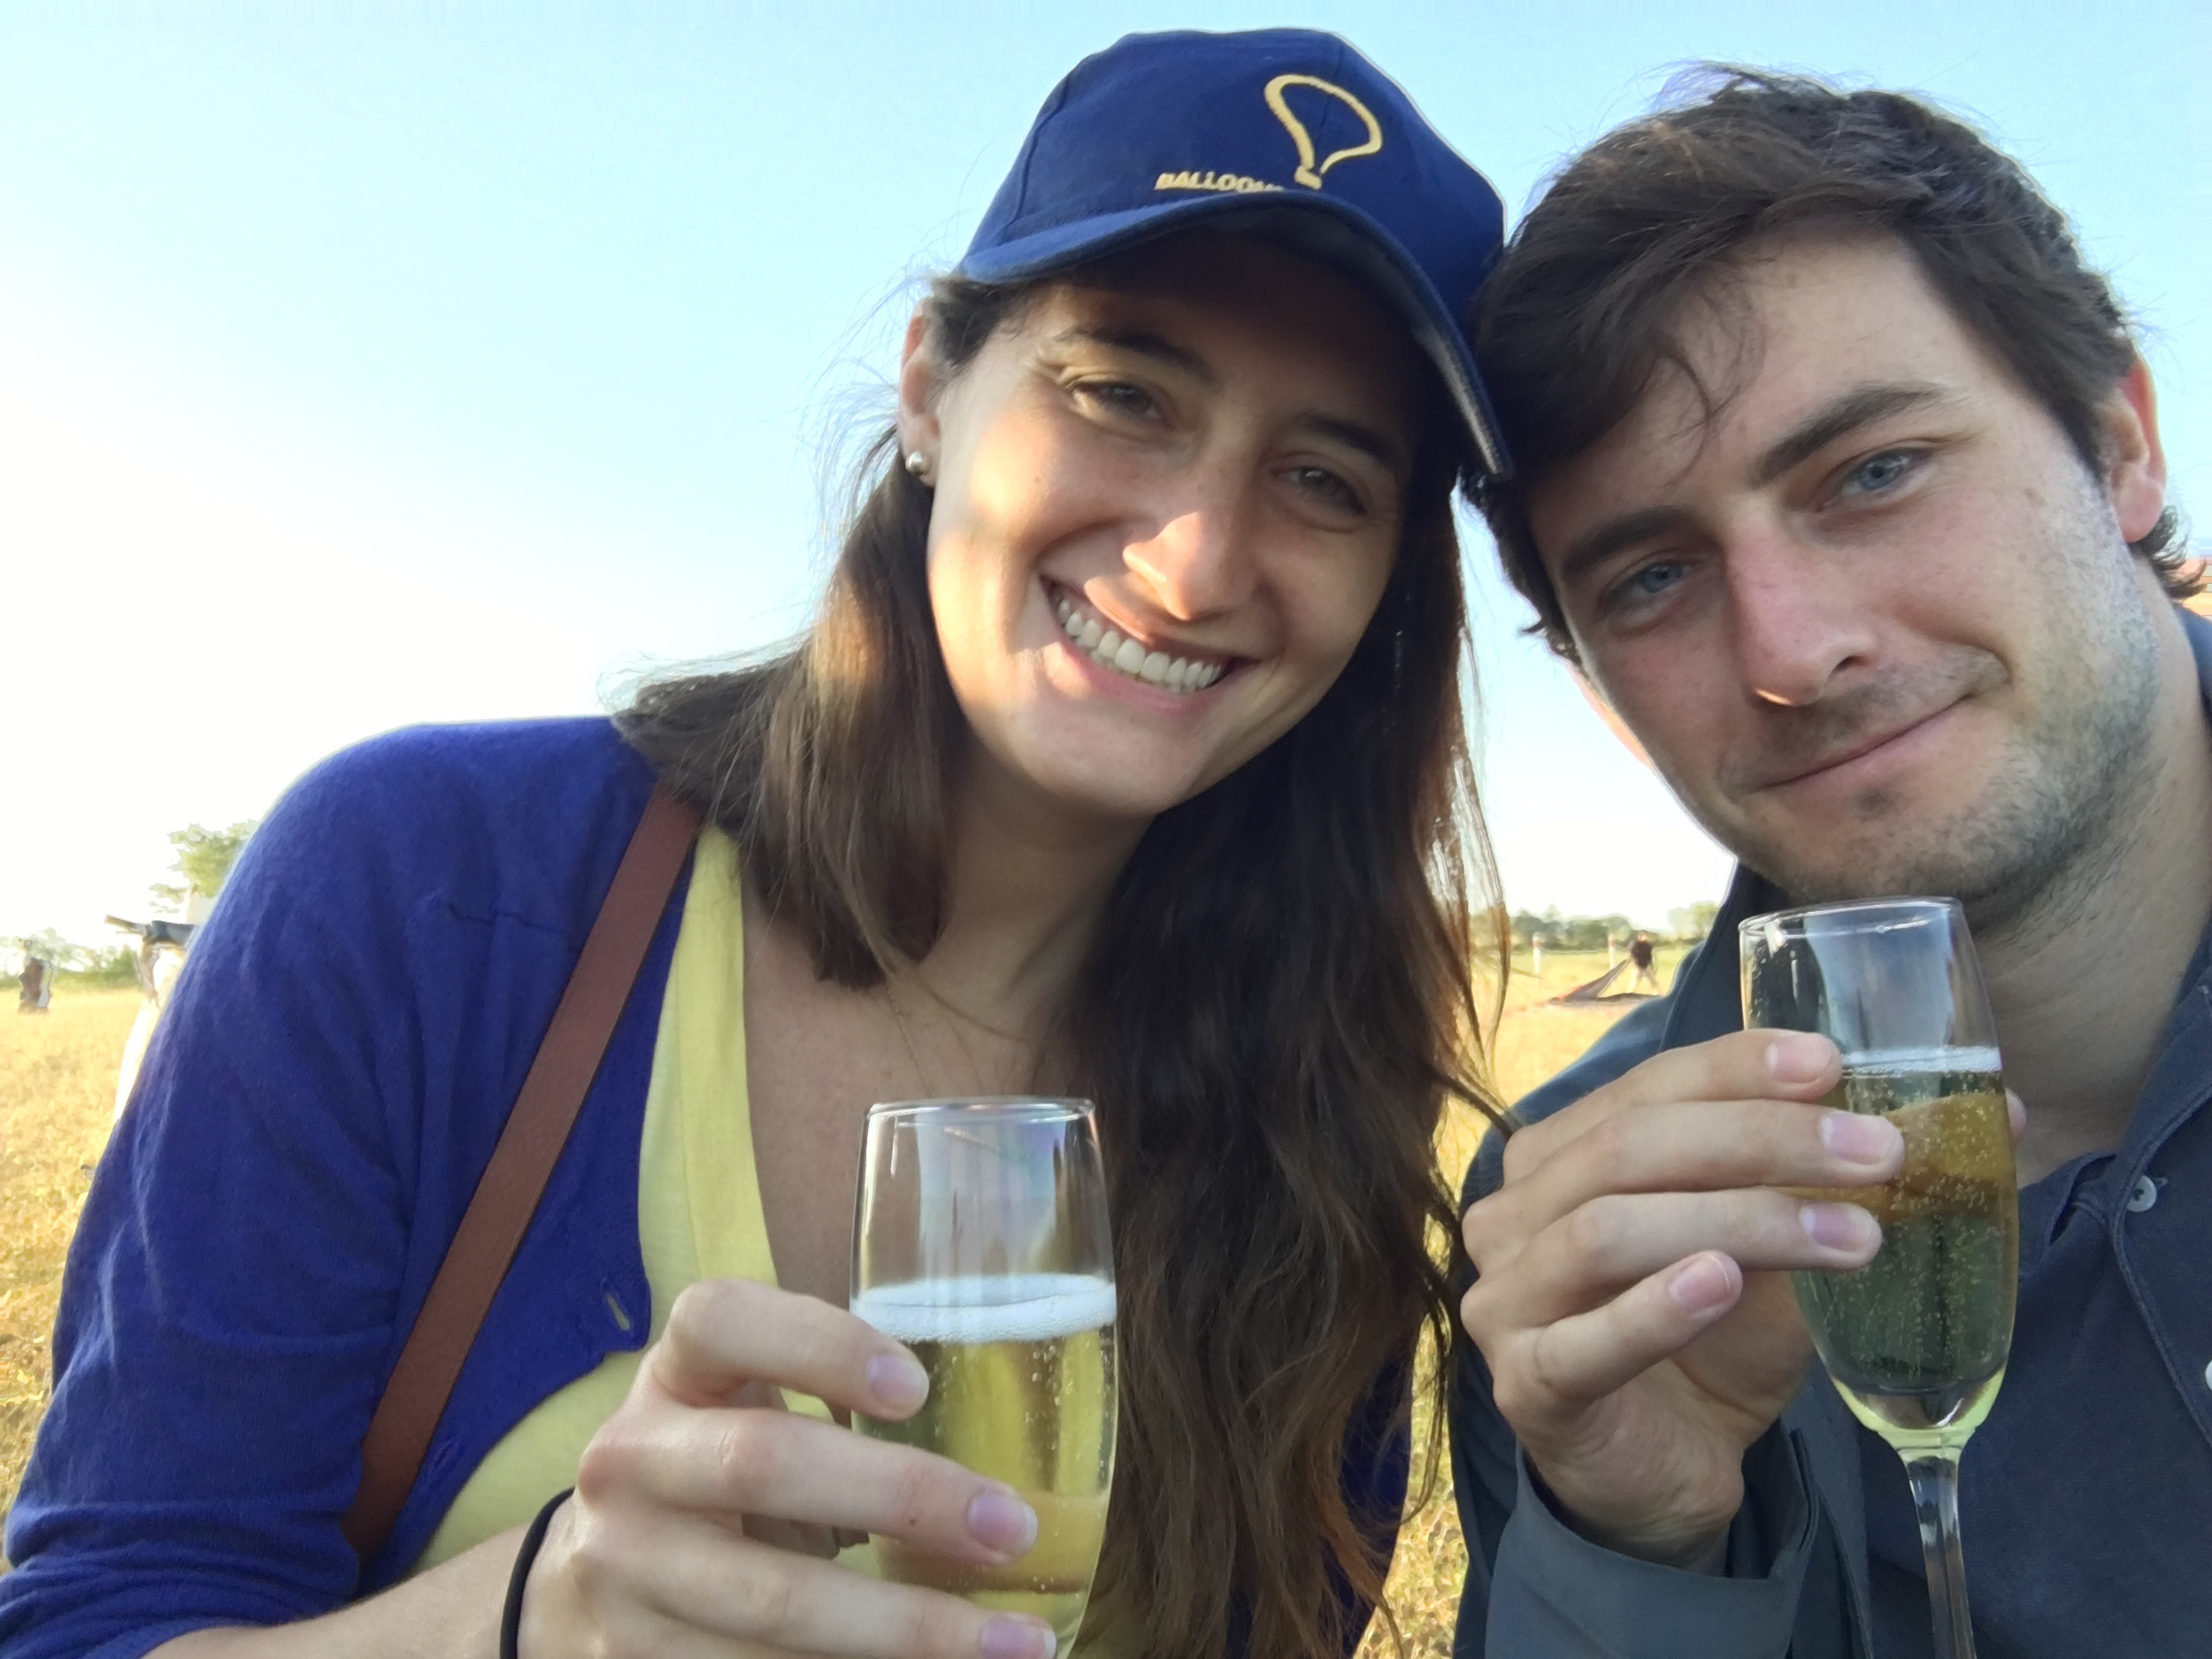 Champagne to celebrate a successful balloon ride